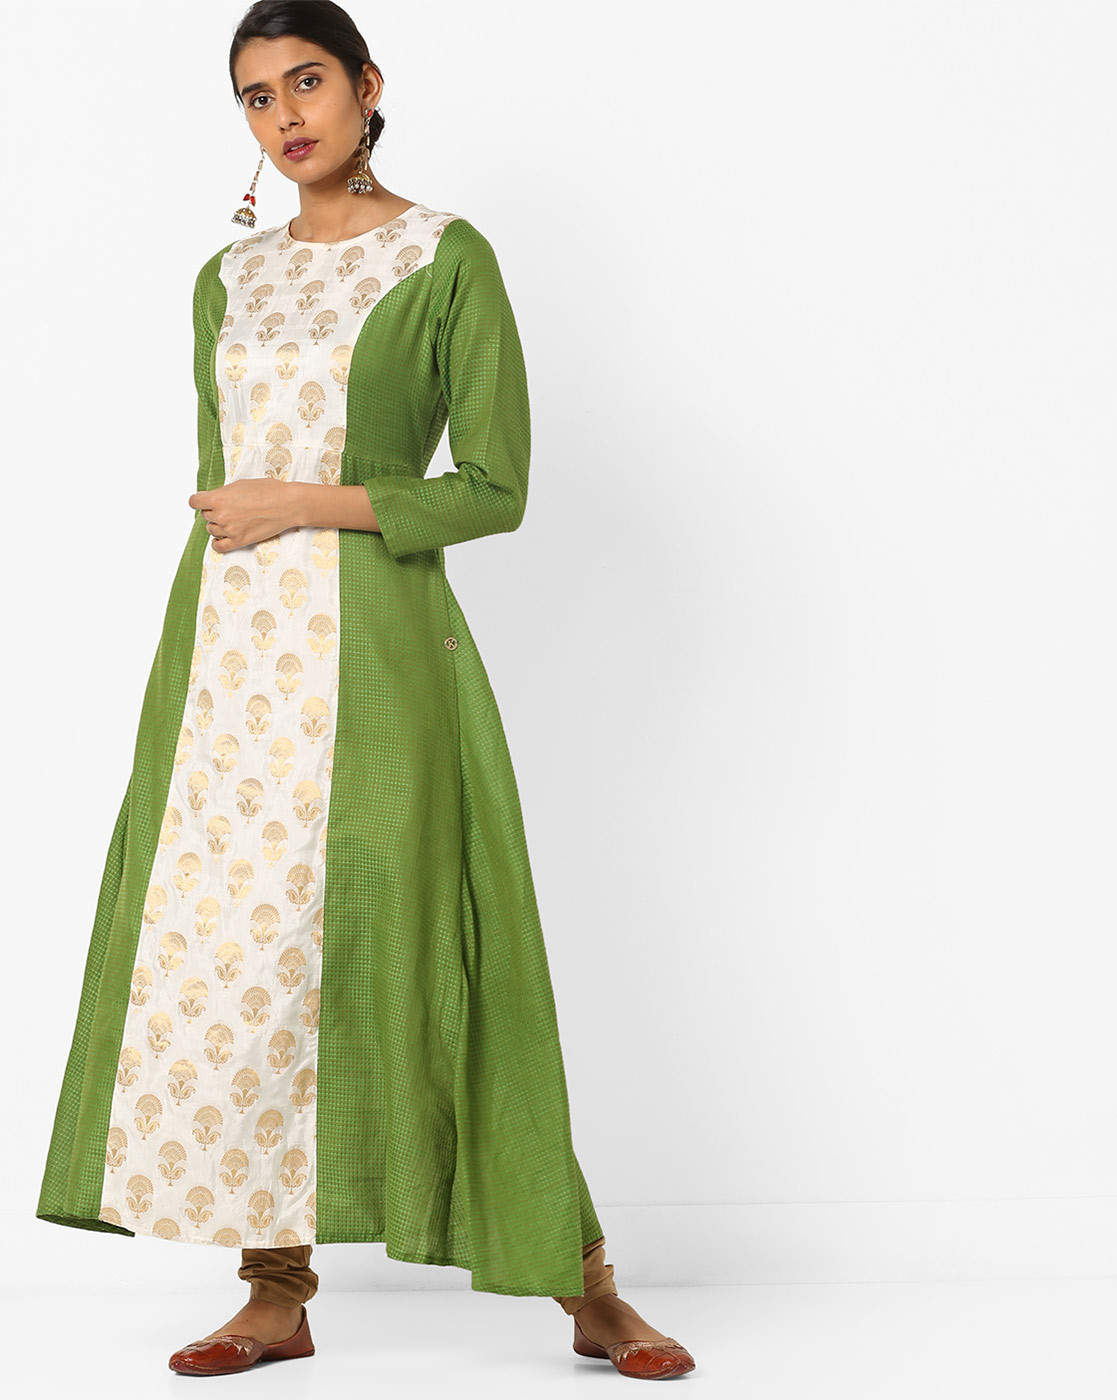 brocade-green-kurta-for-wedding